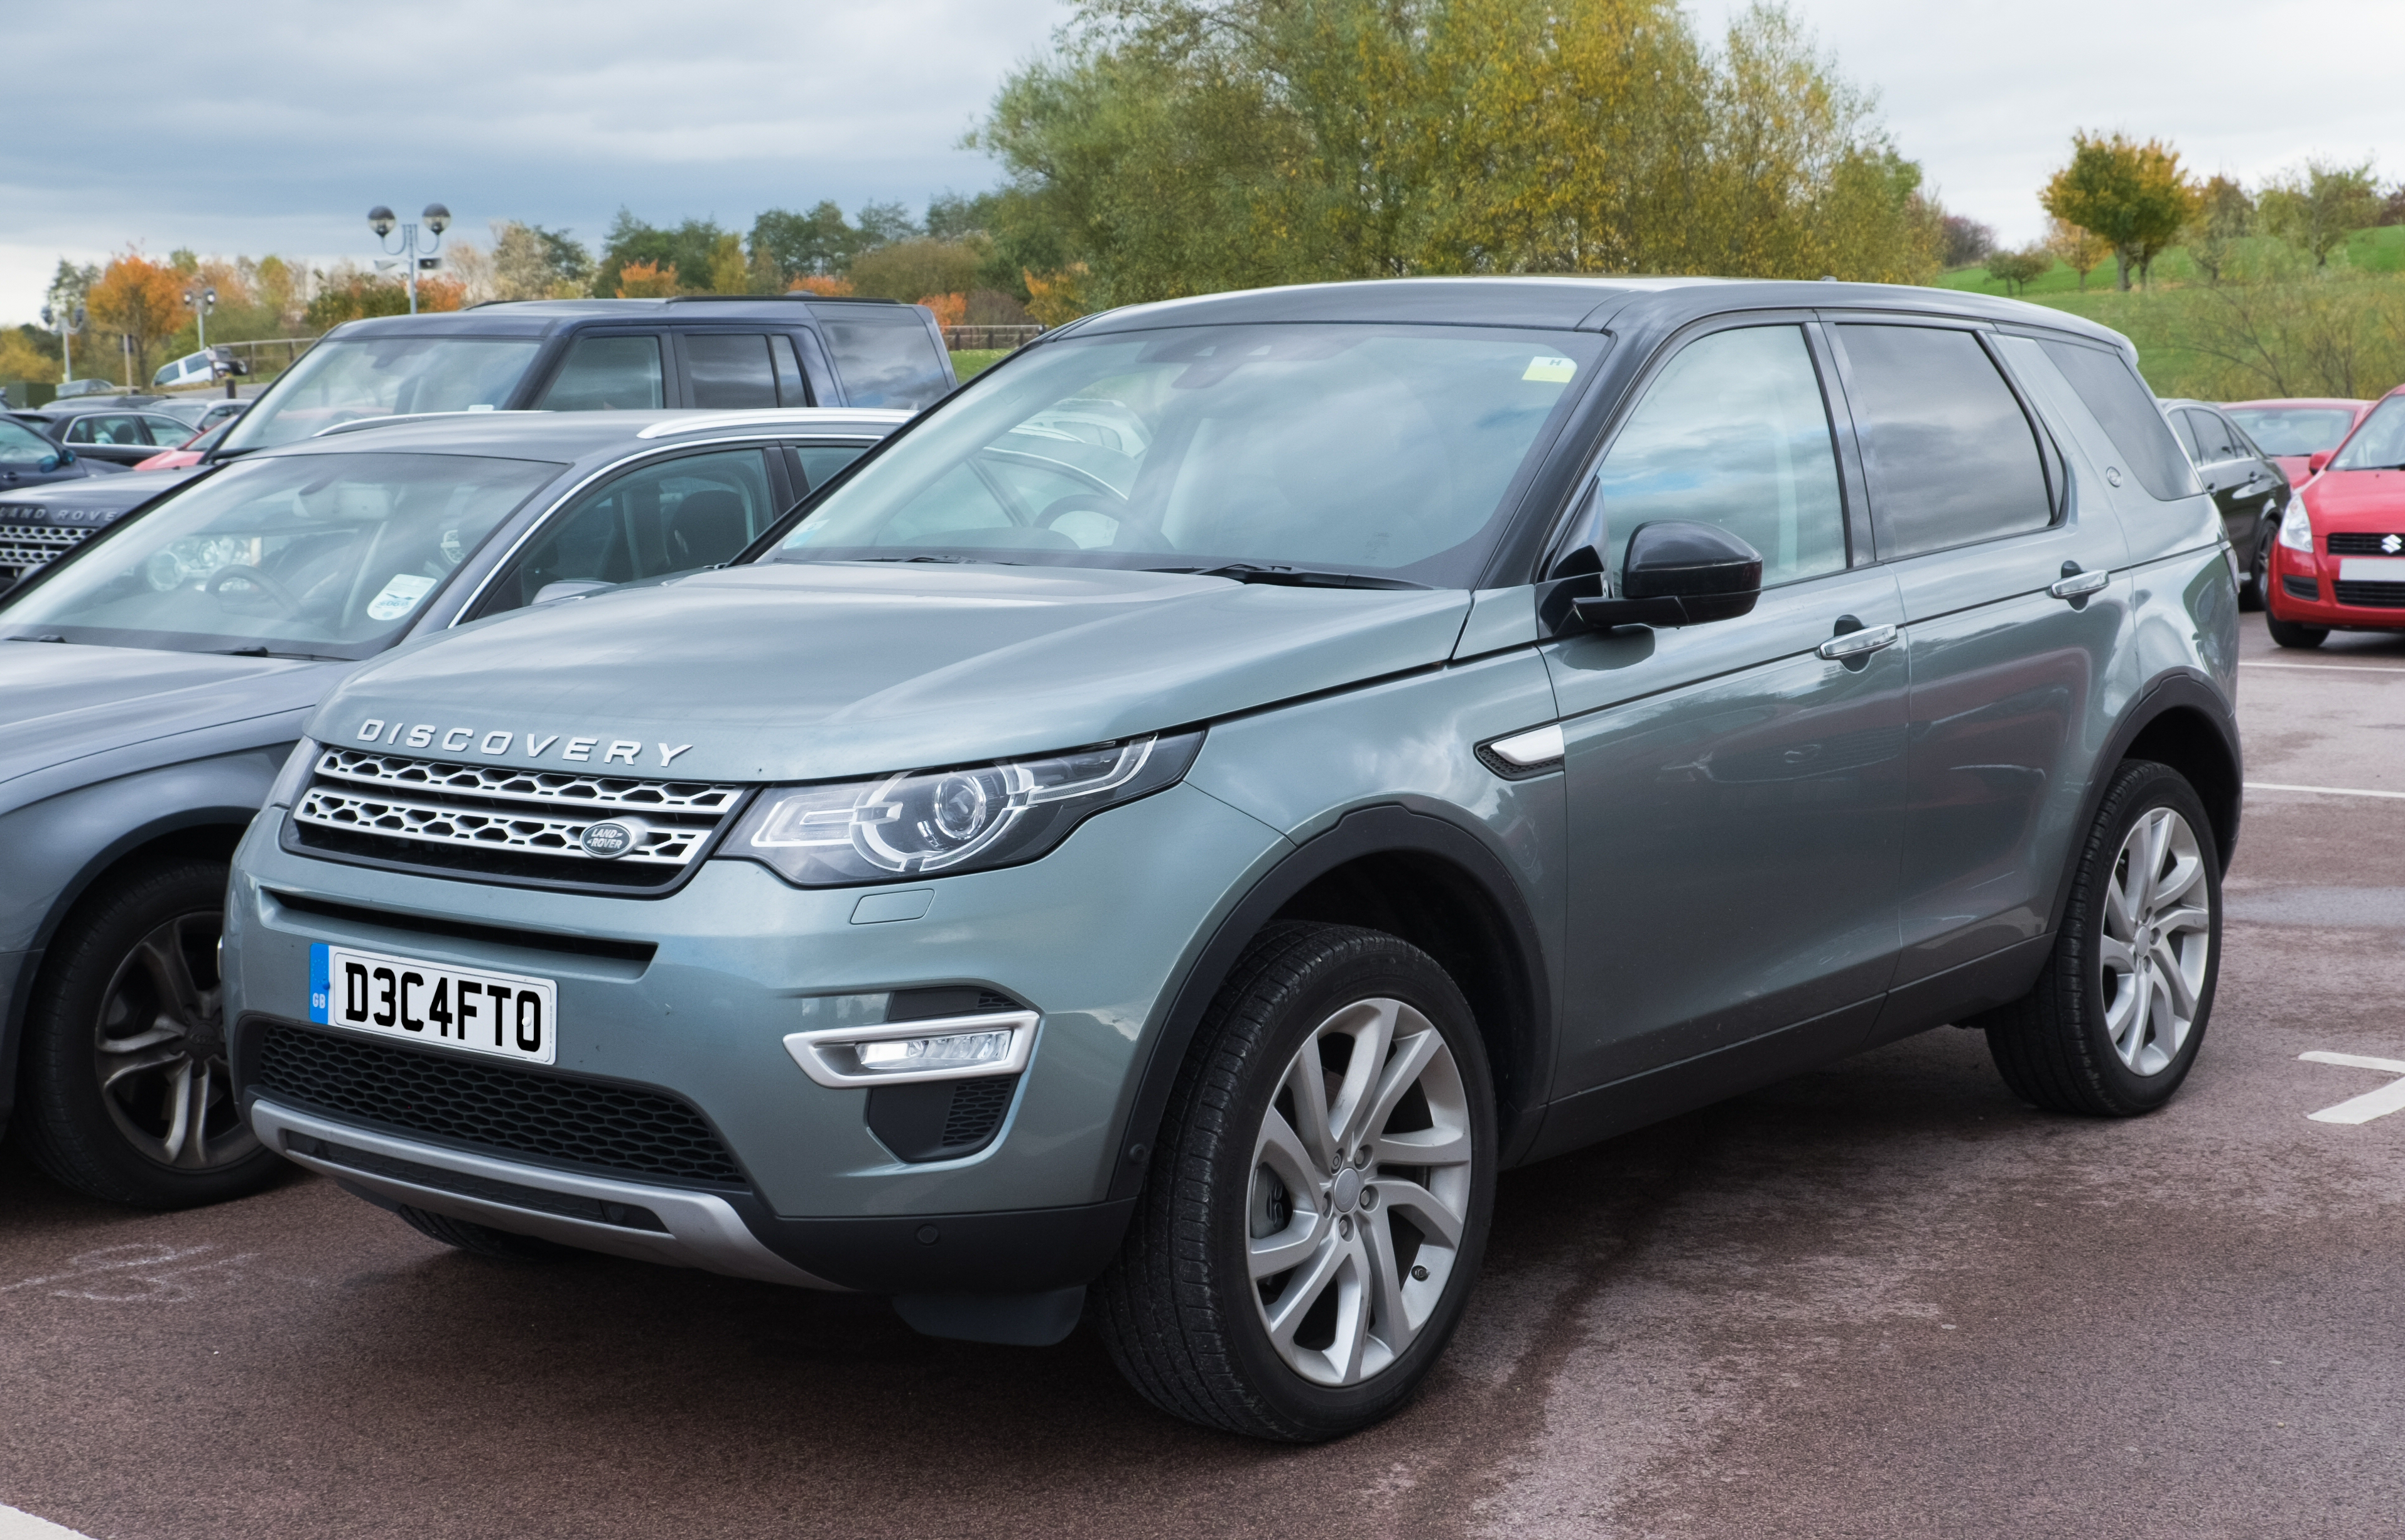 htm for new sport creve landrover rover bl coeur land in discovery sale mo